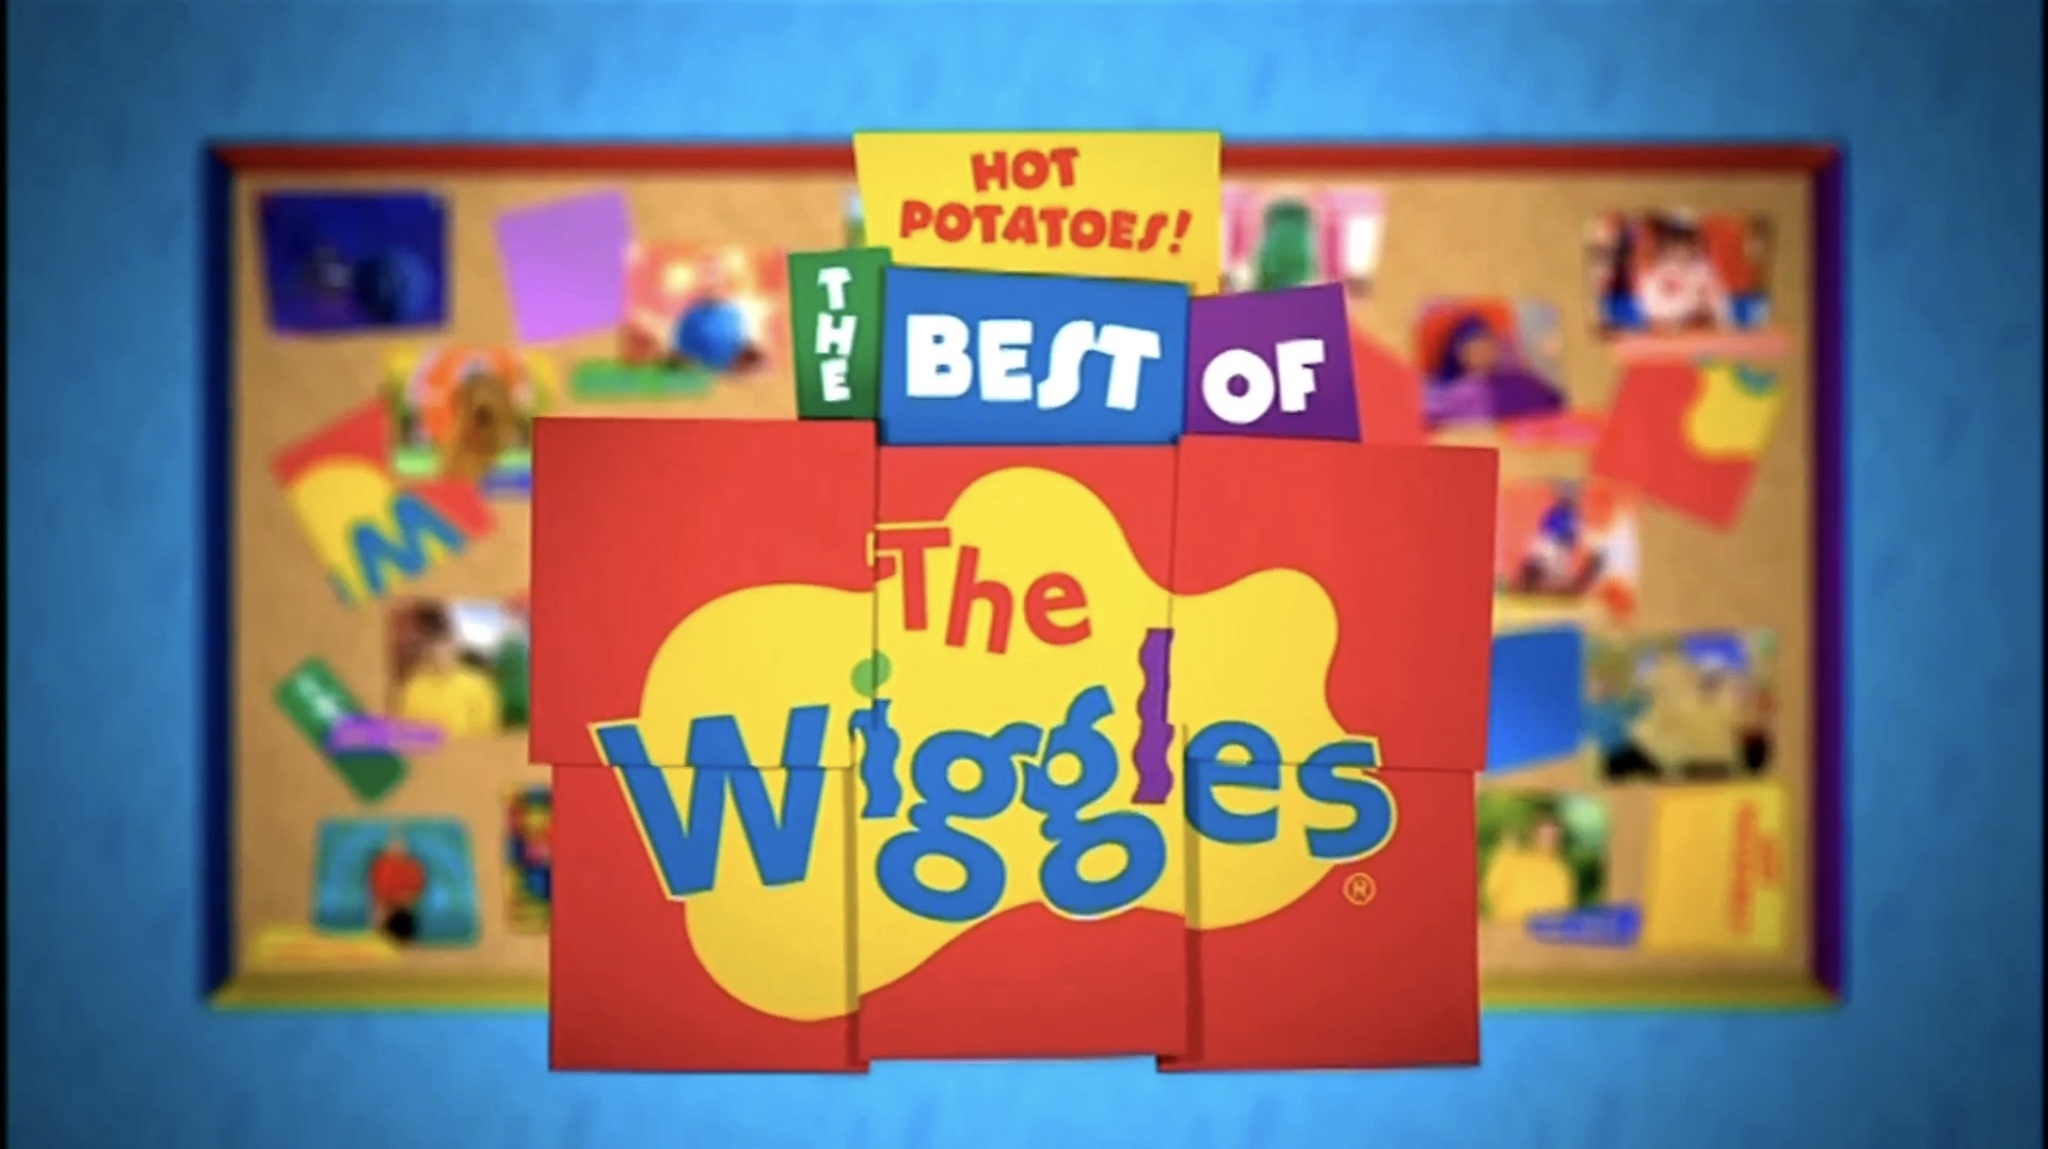 Hot Potatoes! The Best of The Wiggles (2010 video)/Transcript